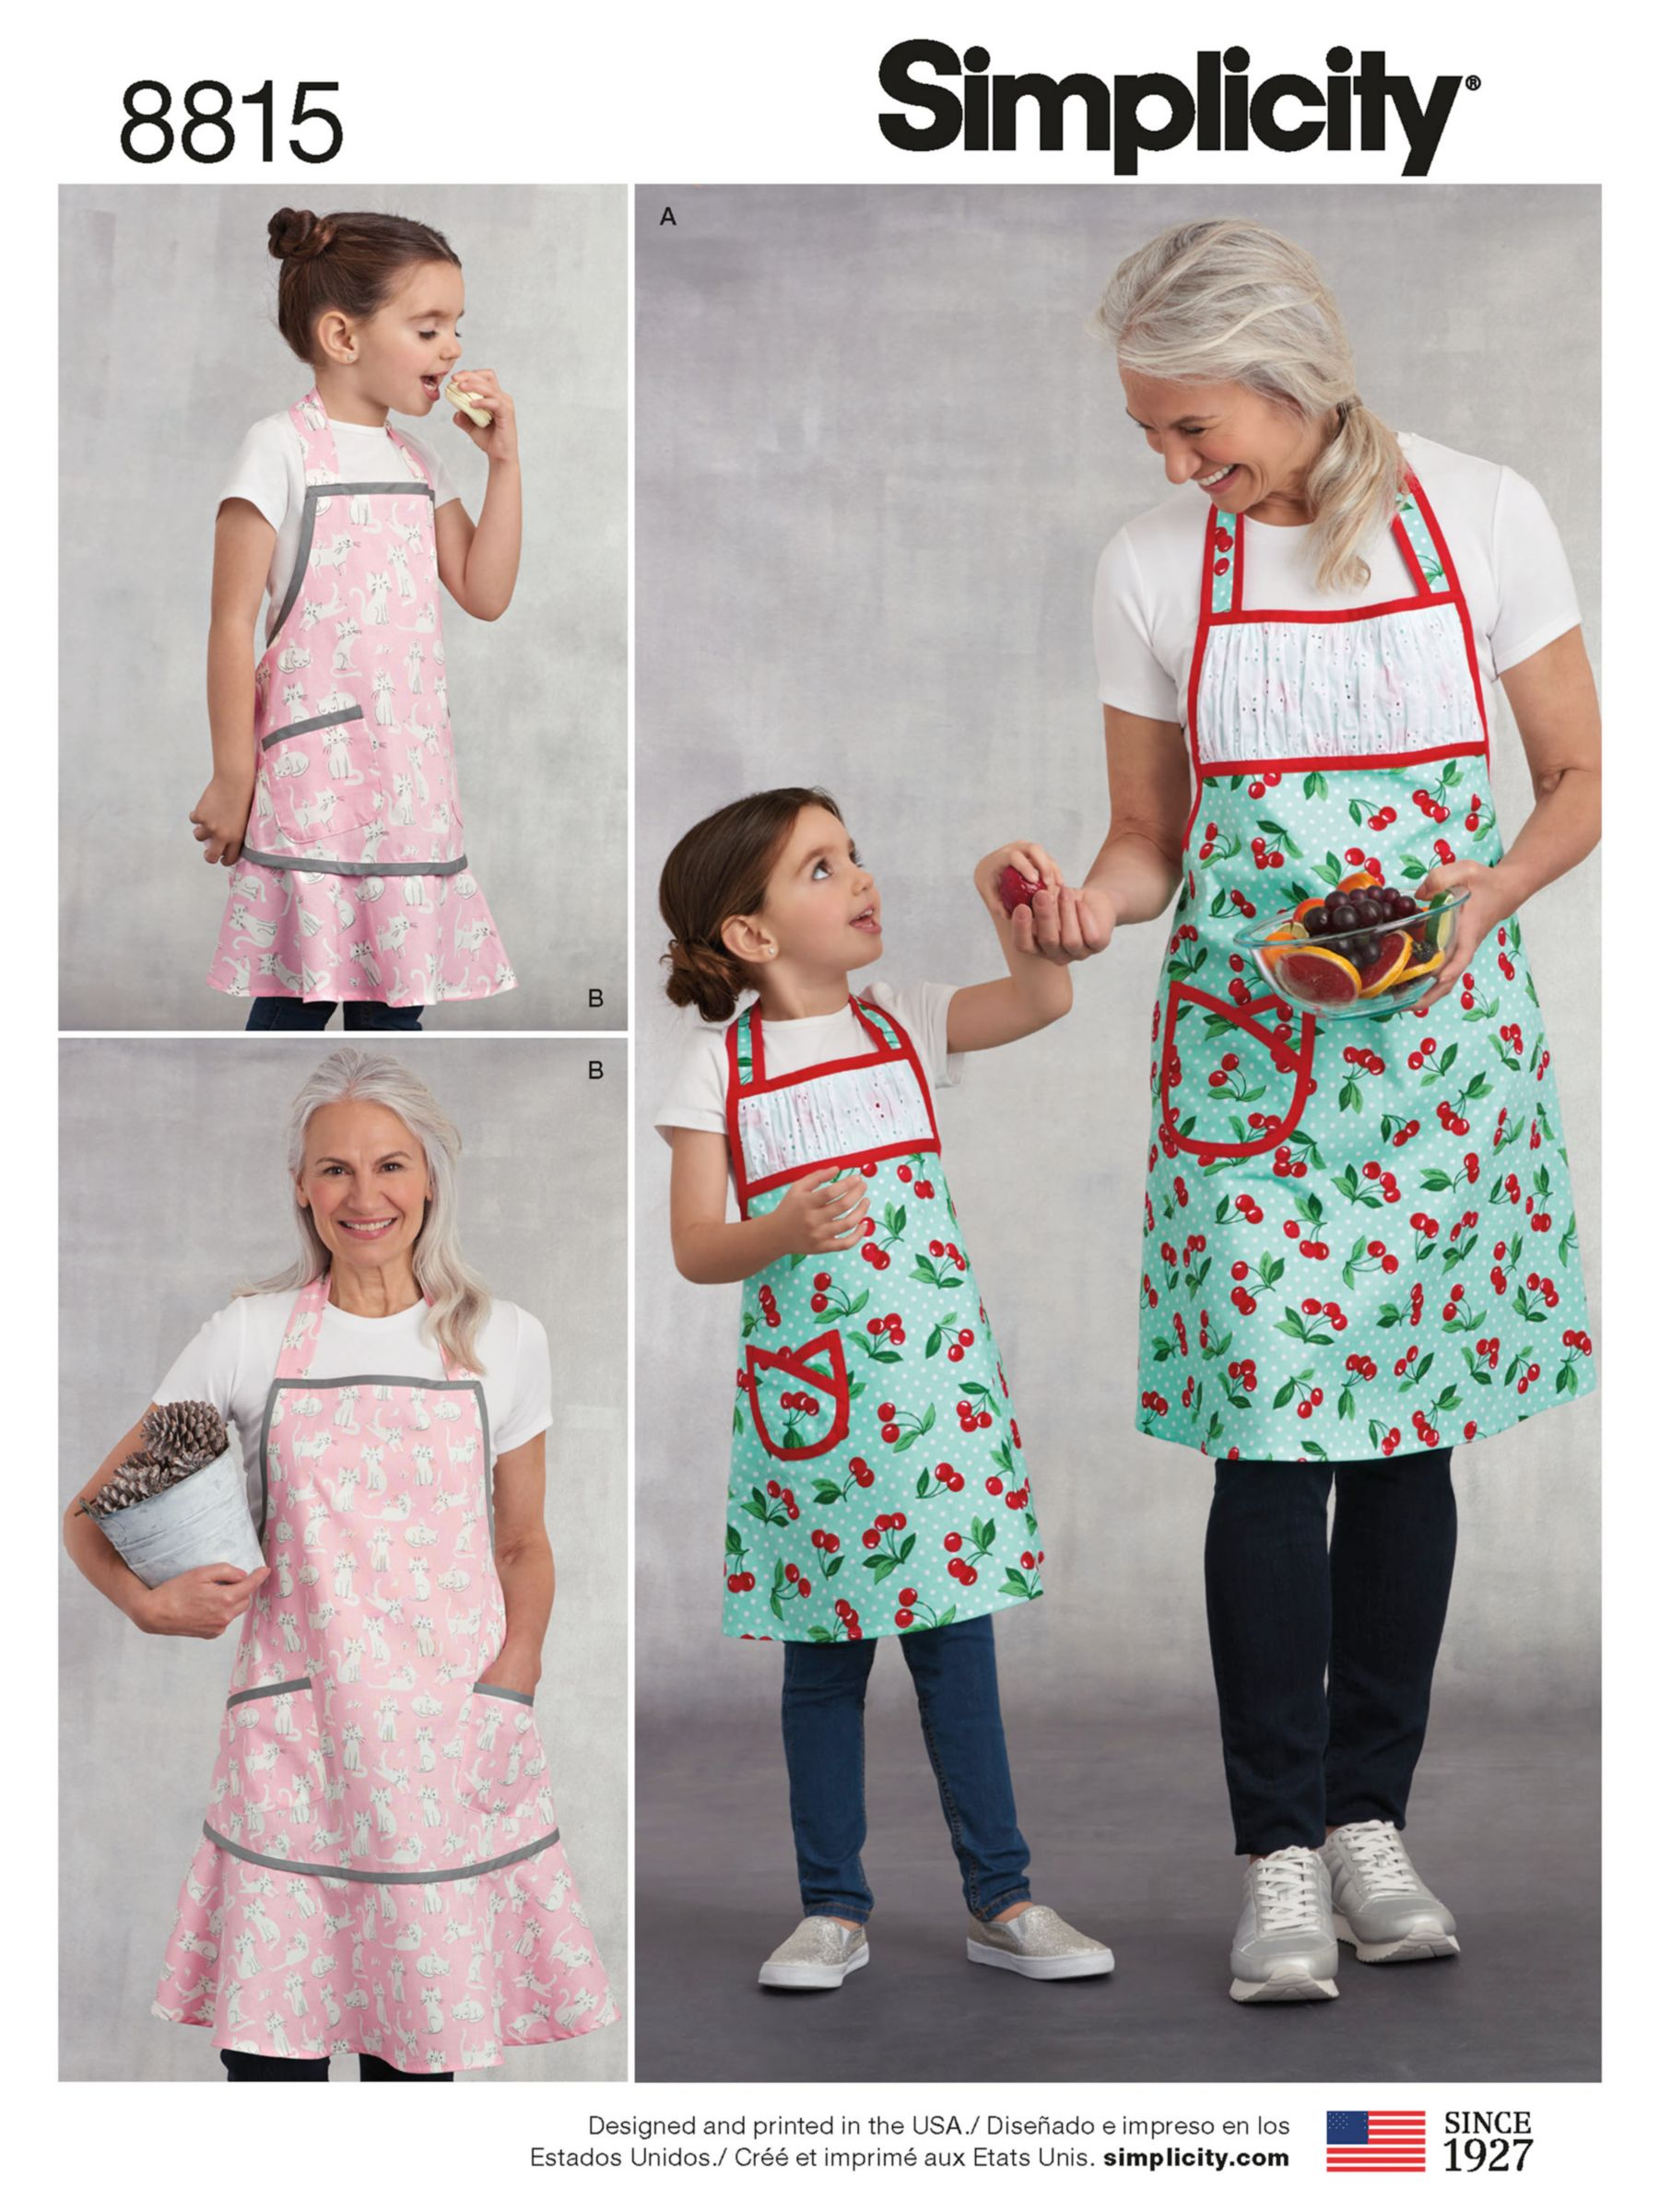 Simplicity Simplicity Women's and Children Matching Aprons Sewing Pattern, 8815, A